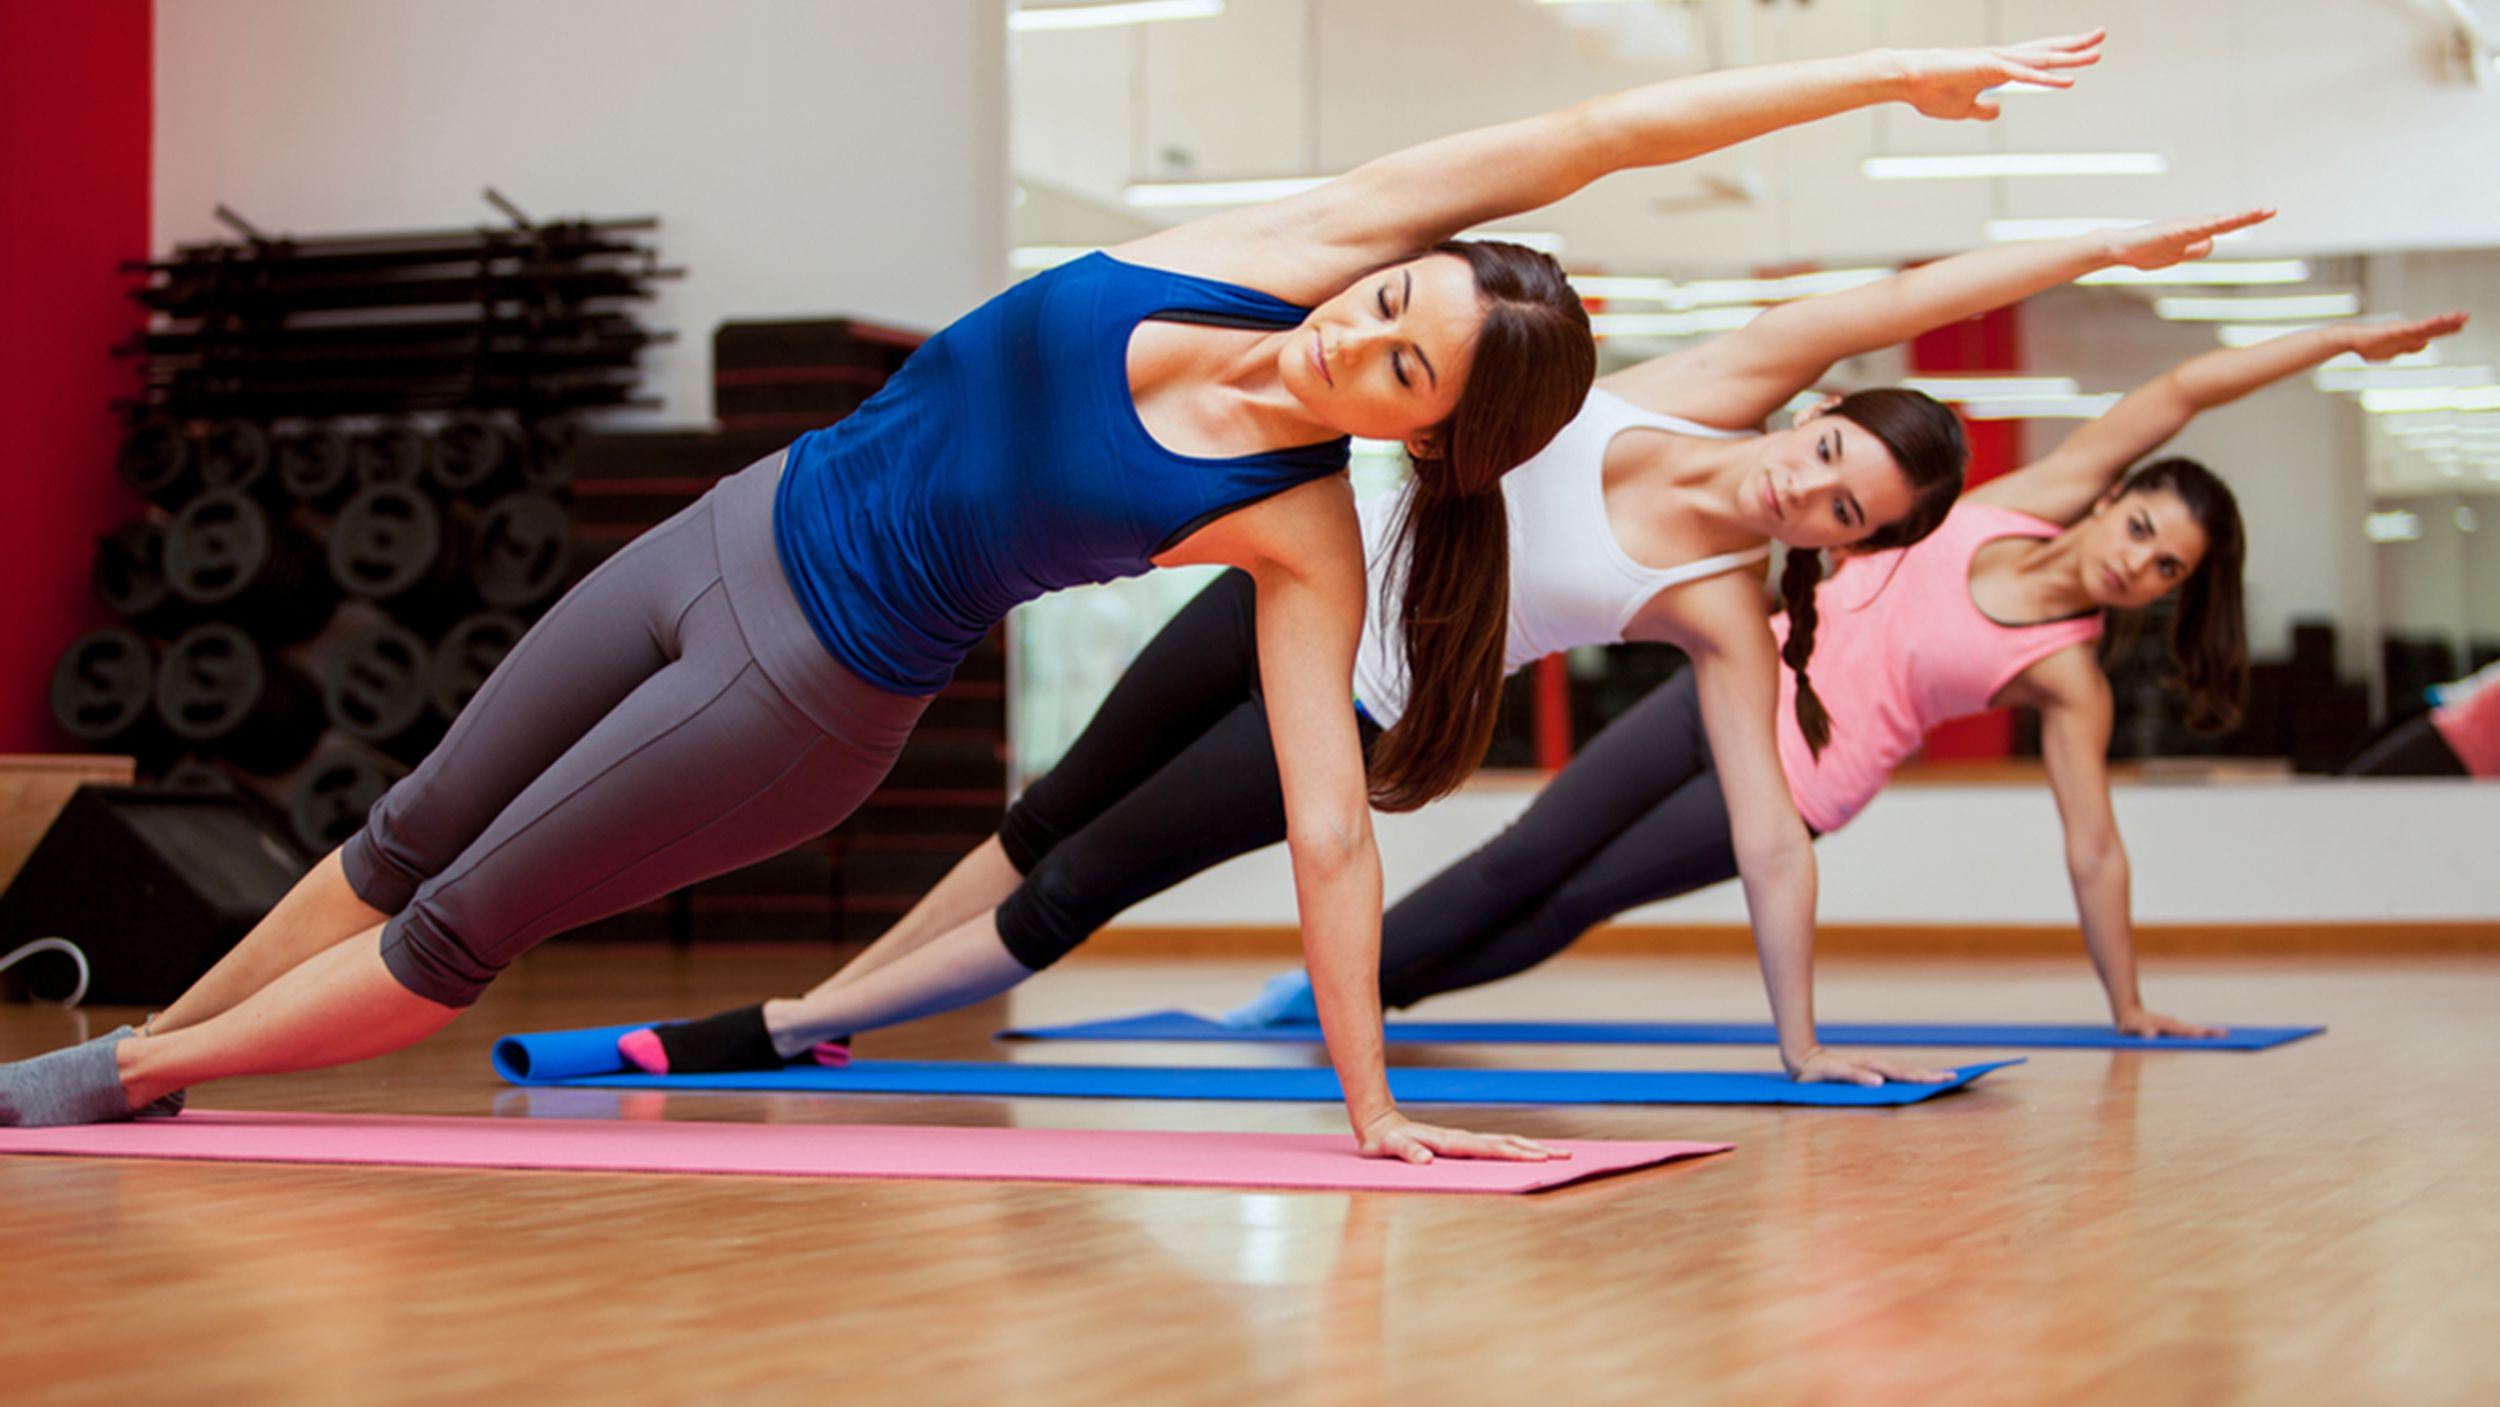 From Pound to animal moves: 4 workouts you should try in 2015